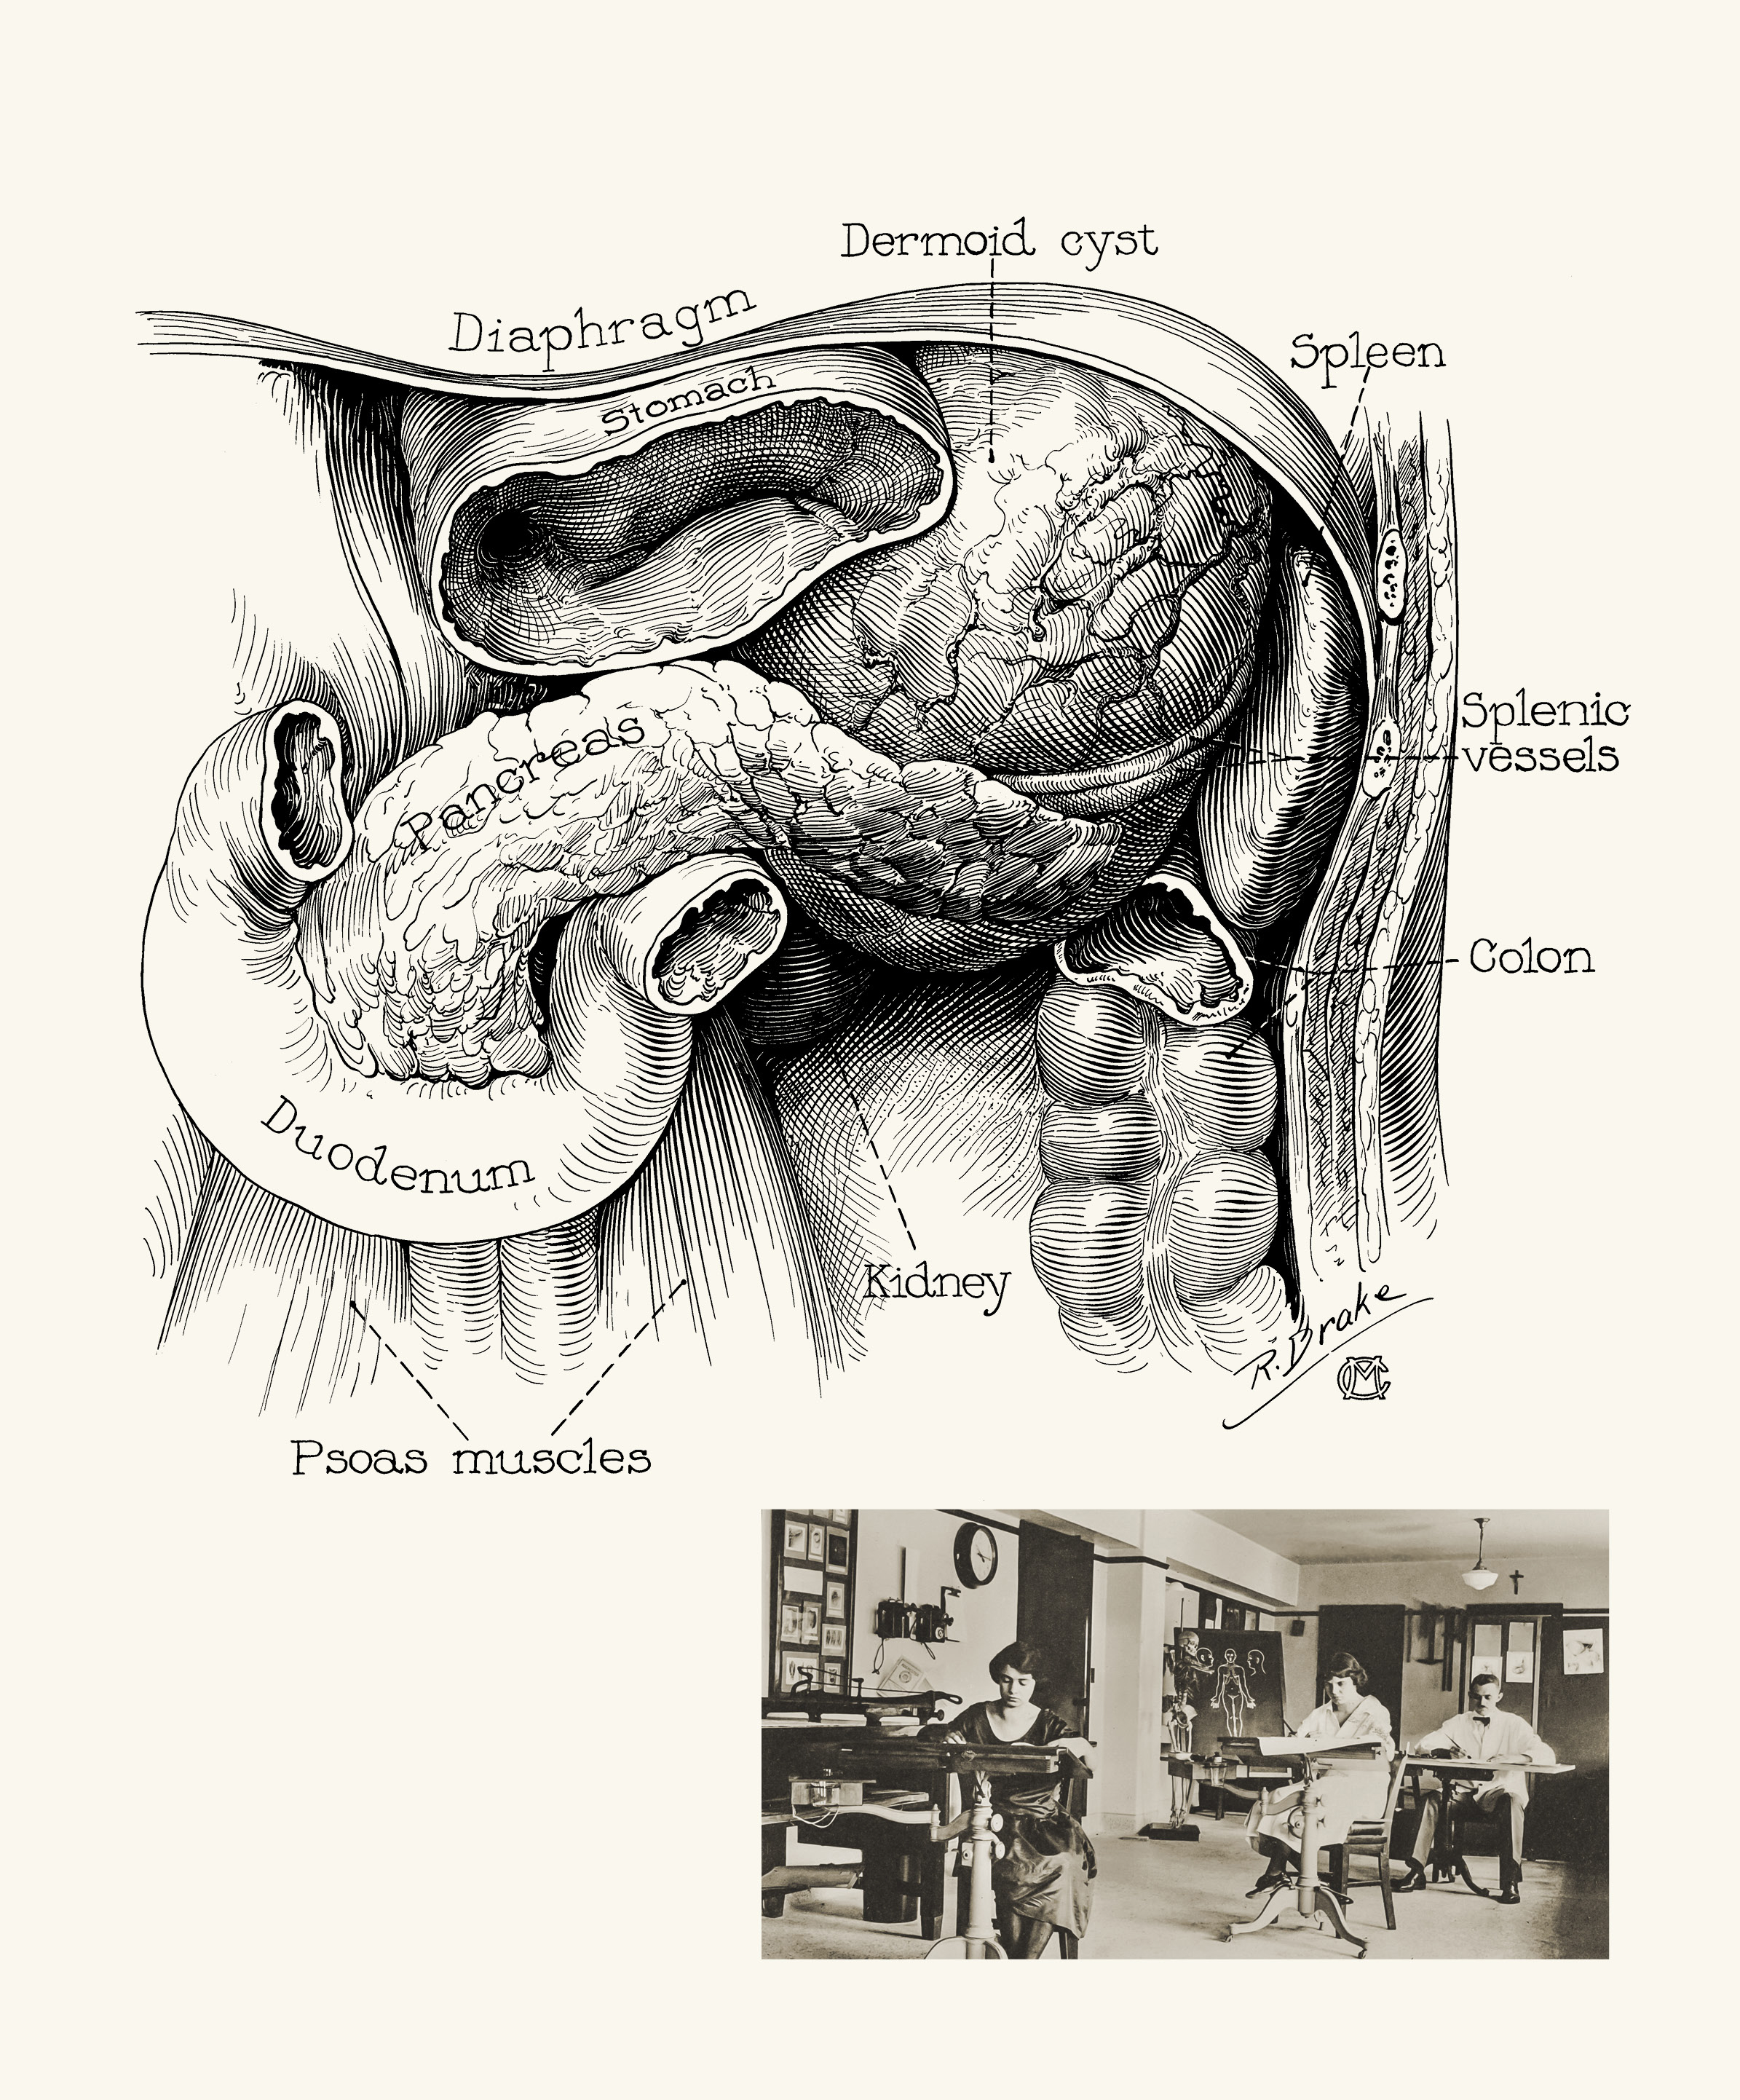 Medical Illustration Clarifies Medical Practice | Discovery\'s Edge